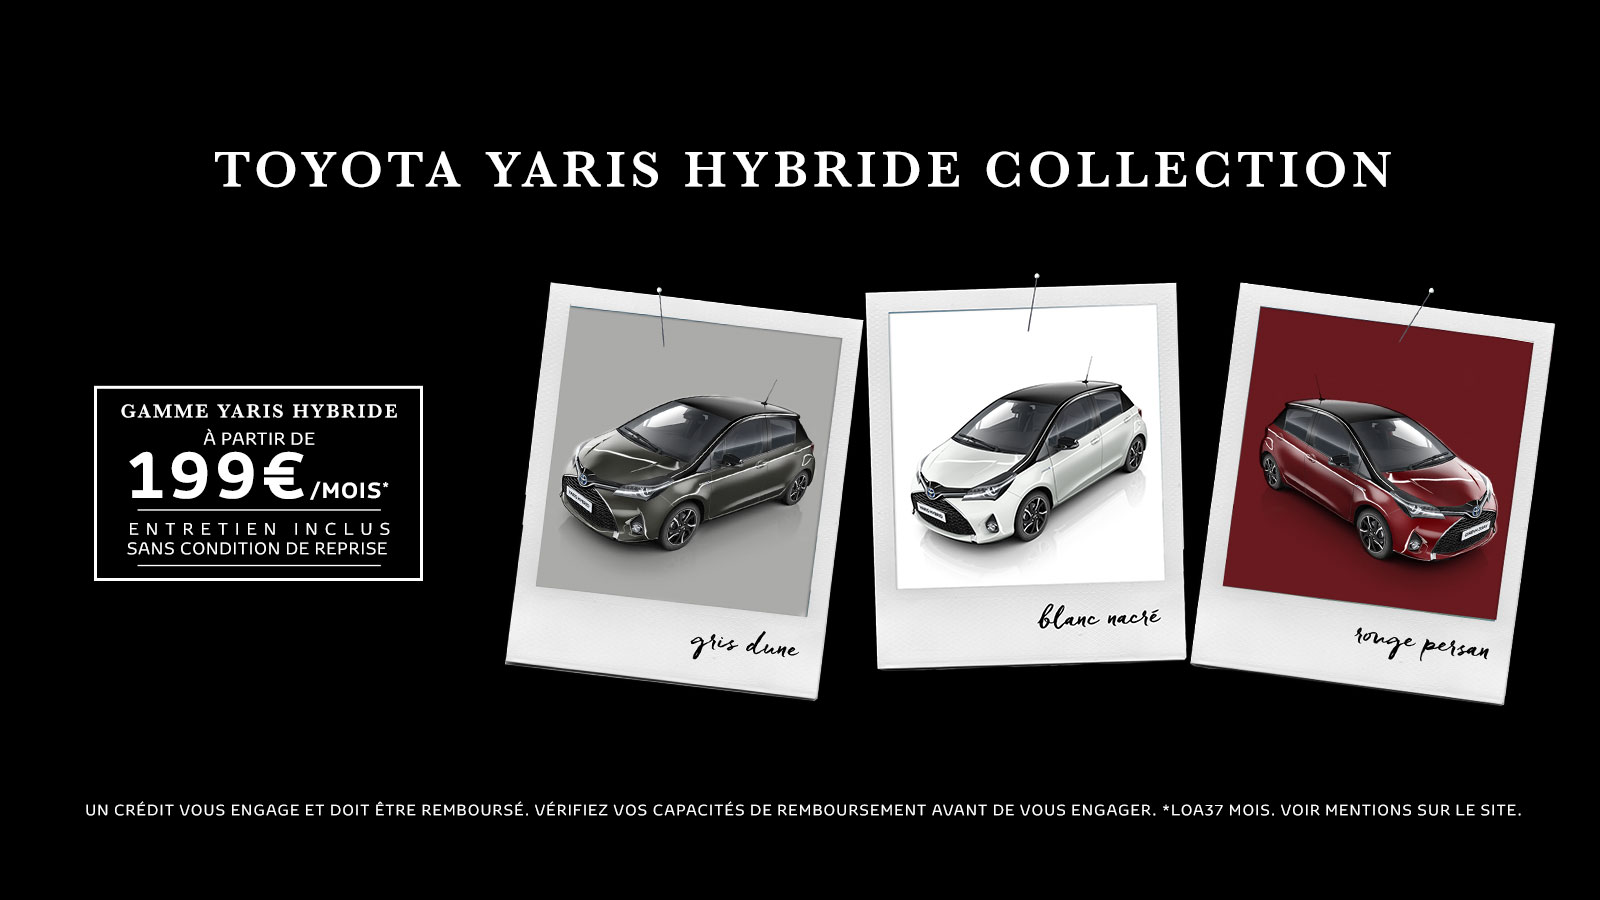 offre sp ciale toyota yaris hybride la toyota made in france. Black Bedroom Furniture Sets. Home Design Ideas